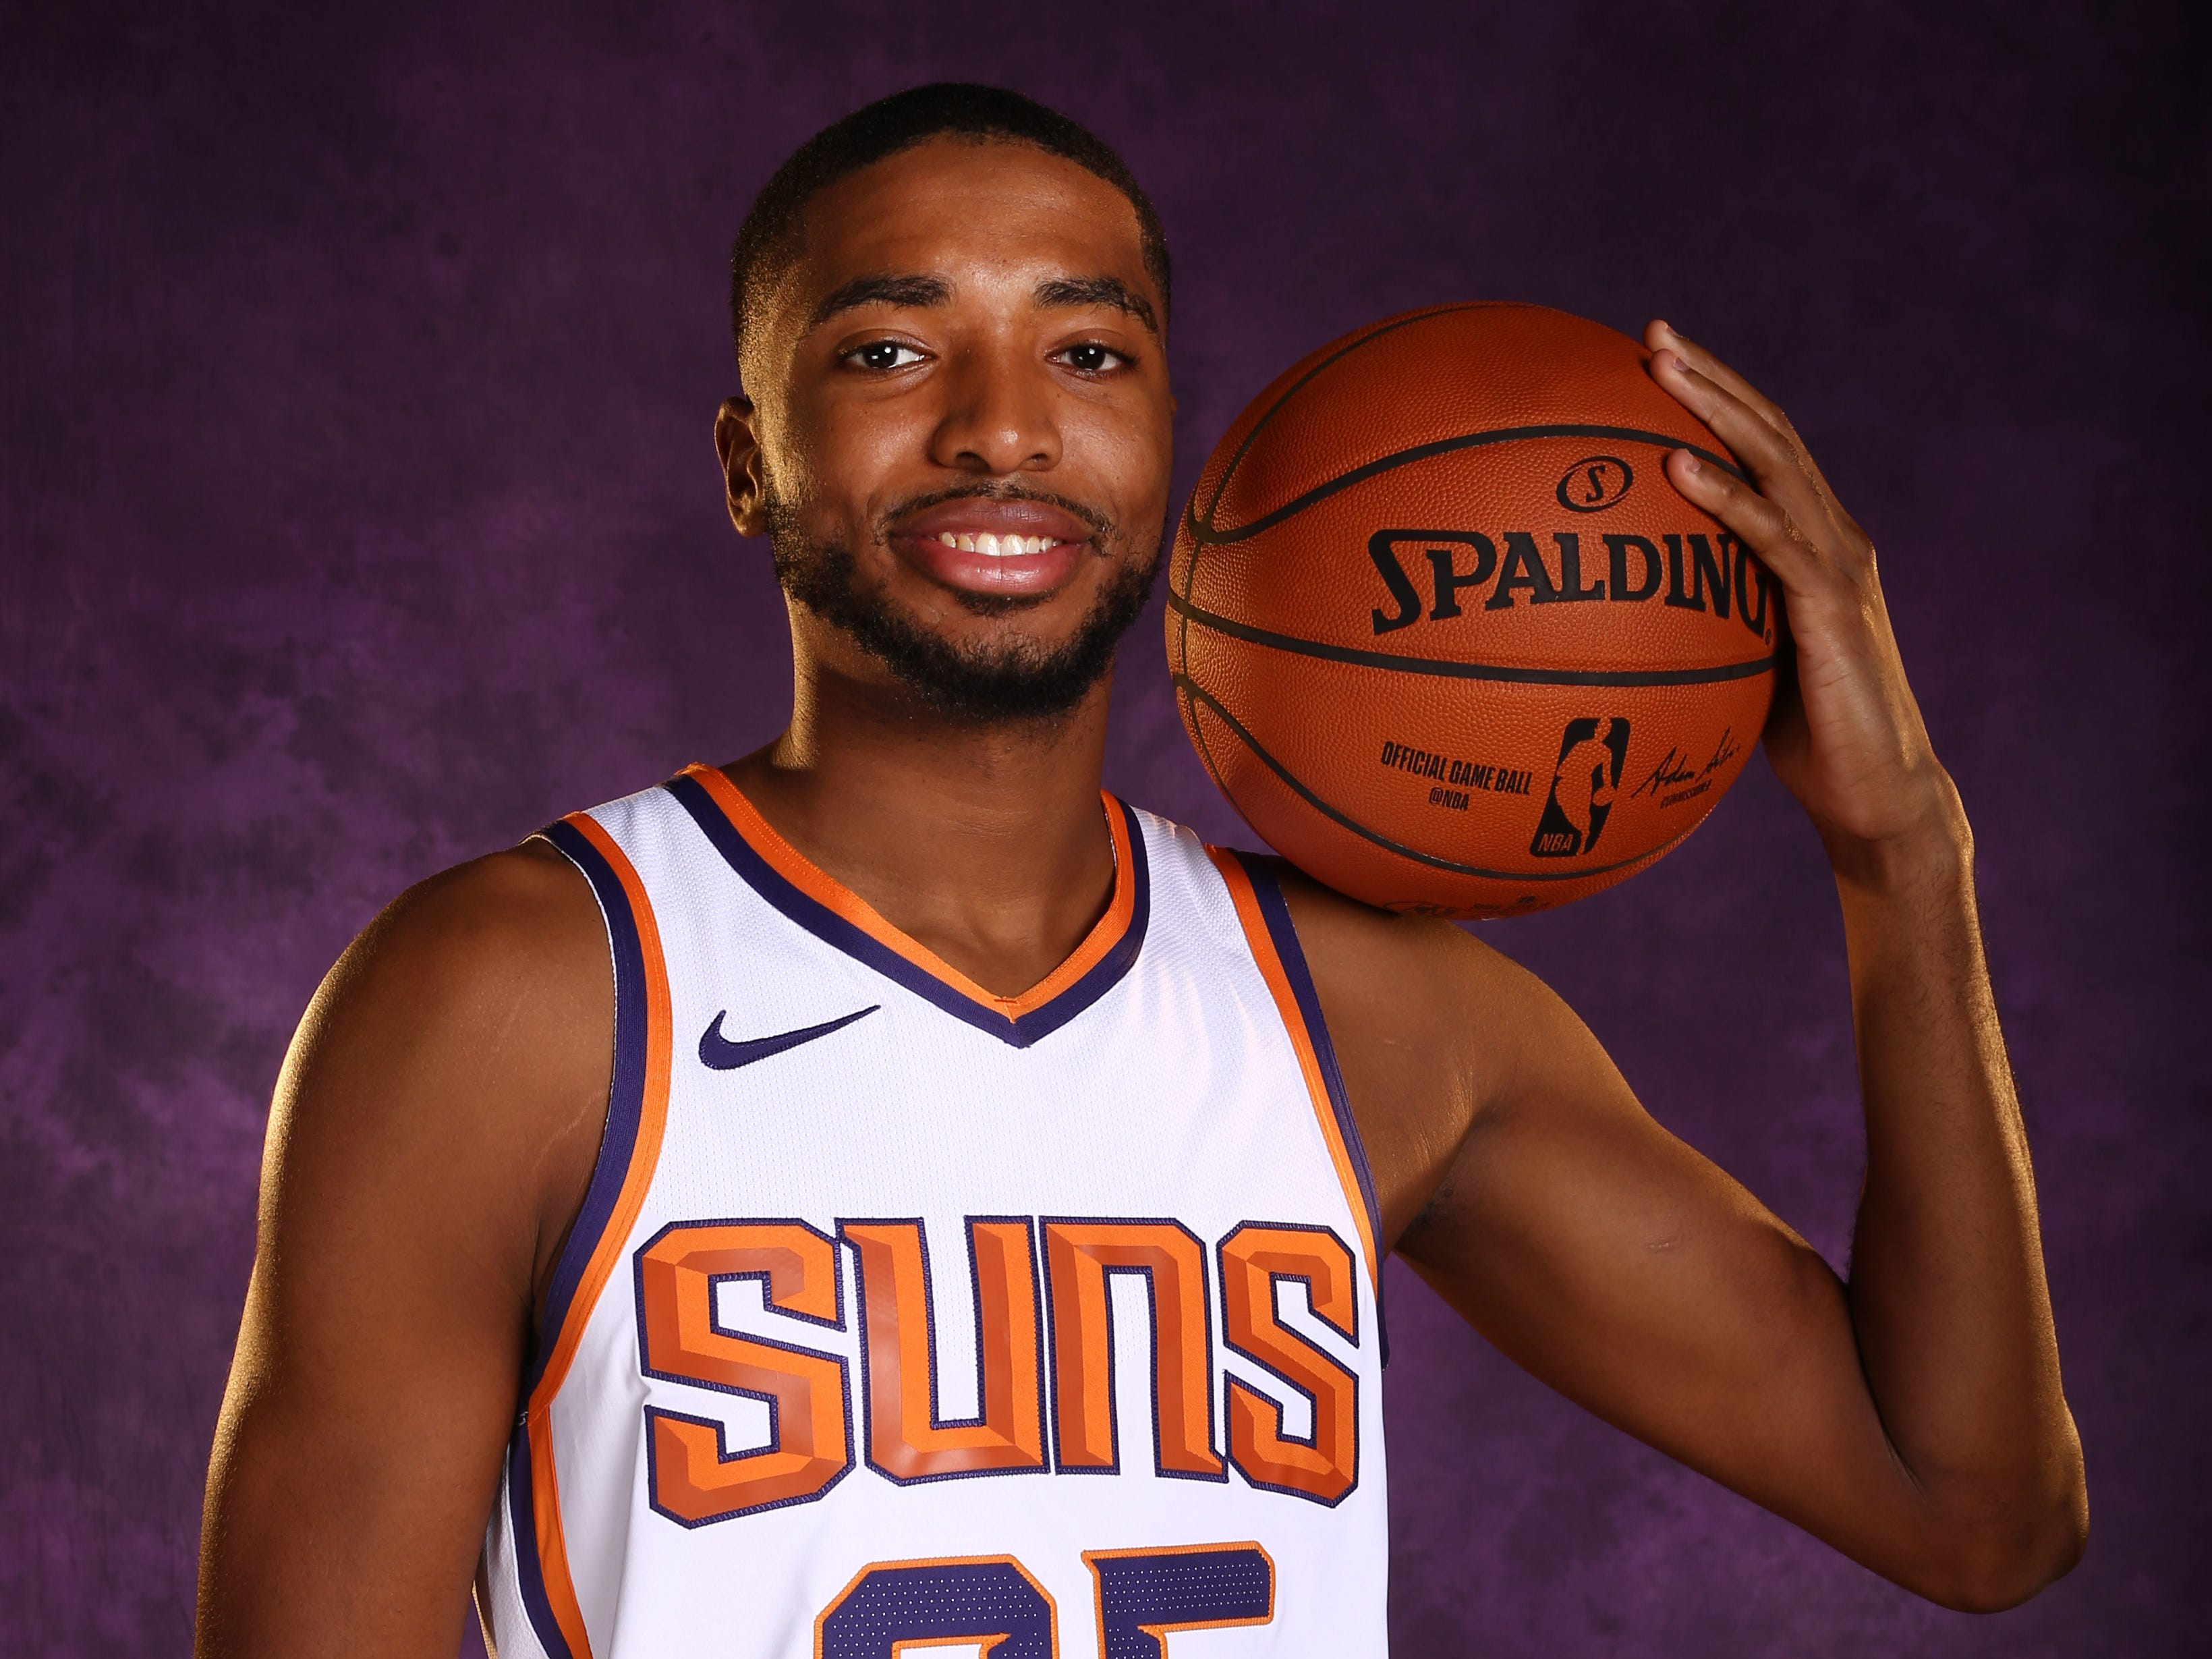 Phoenix Suns forward Mikal Bridges during media day at Talking Stick Resort Arena on Sep. 24, 2018, in Phoenix, Ariz.